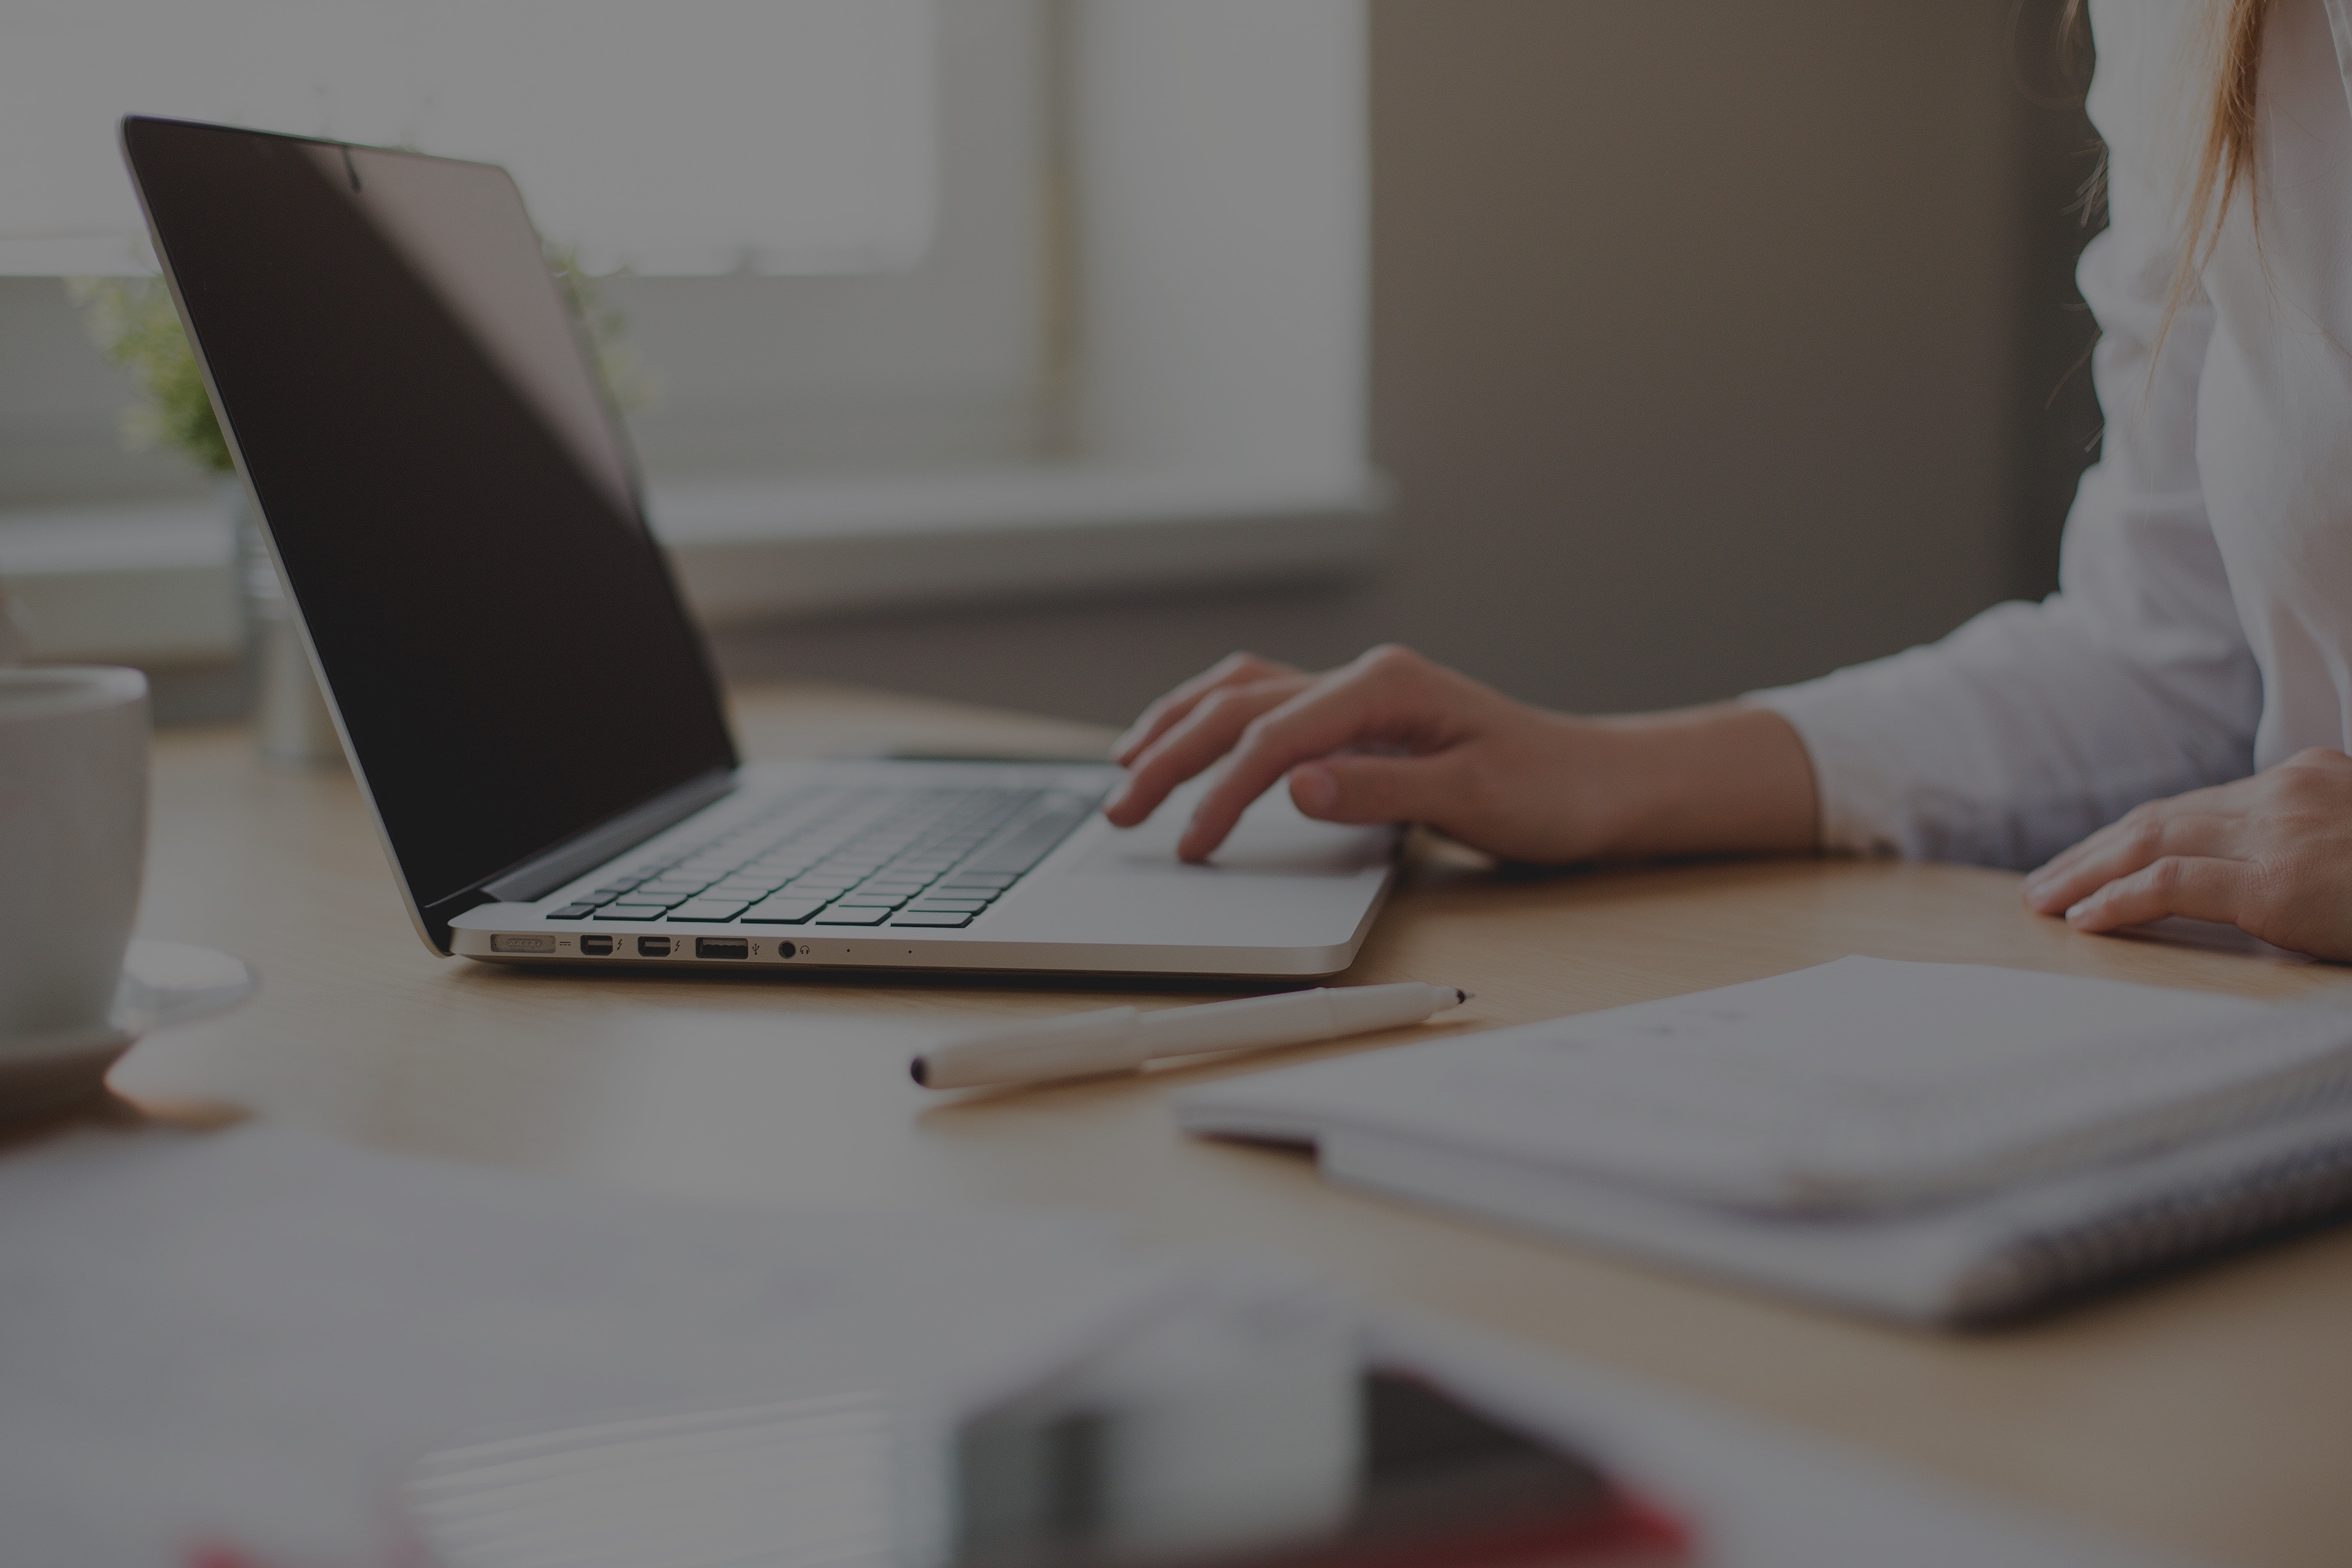 Best laptops for writers 2019 (According to a writer)